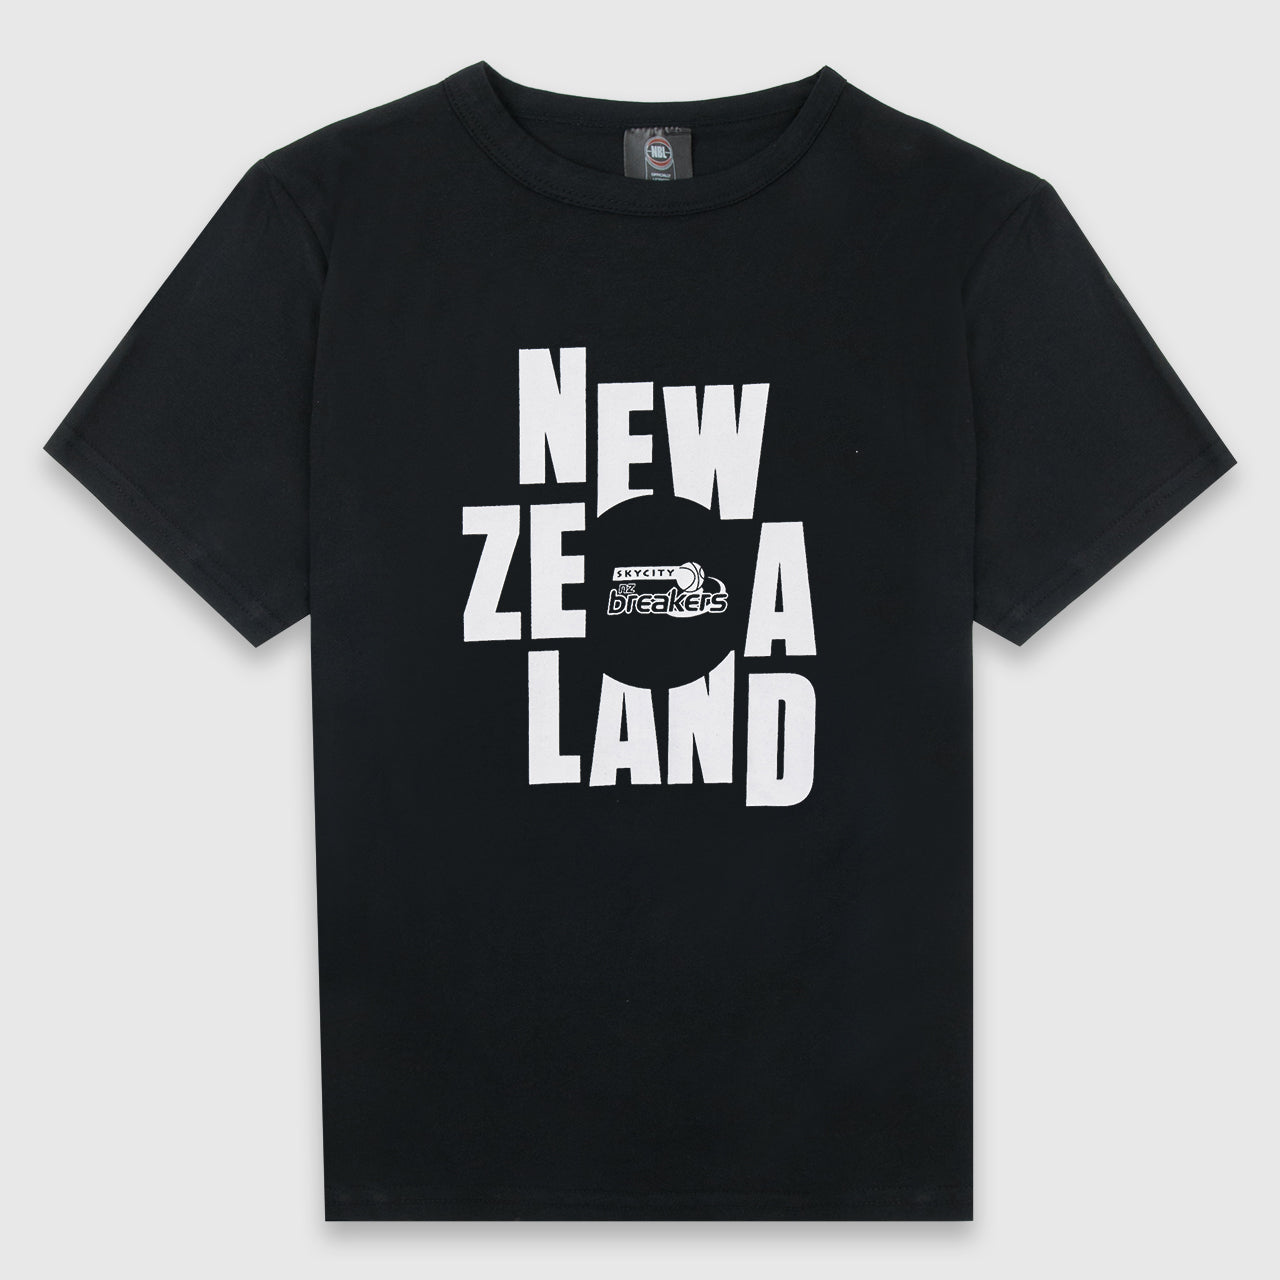 New Zealand Breakers Hometown Unisex Youth Tee